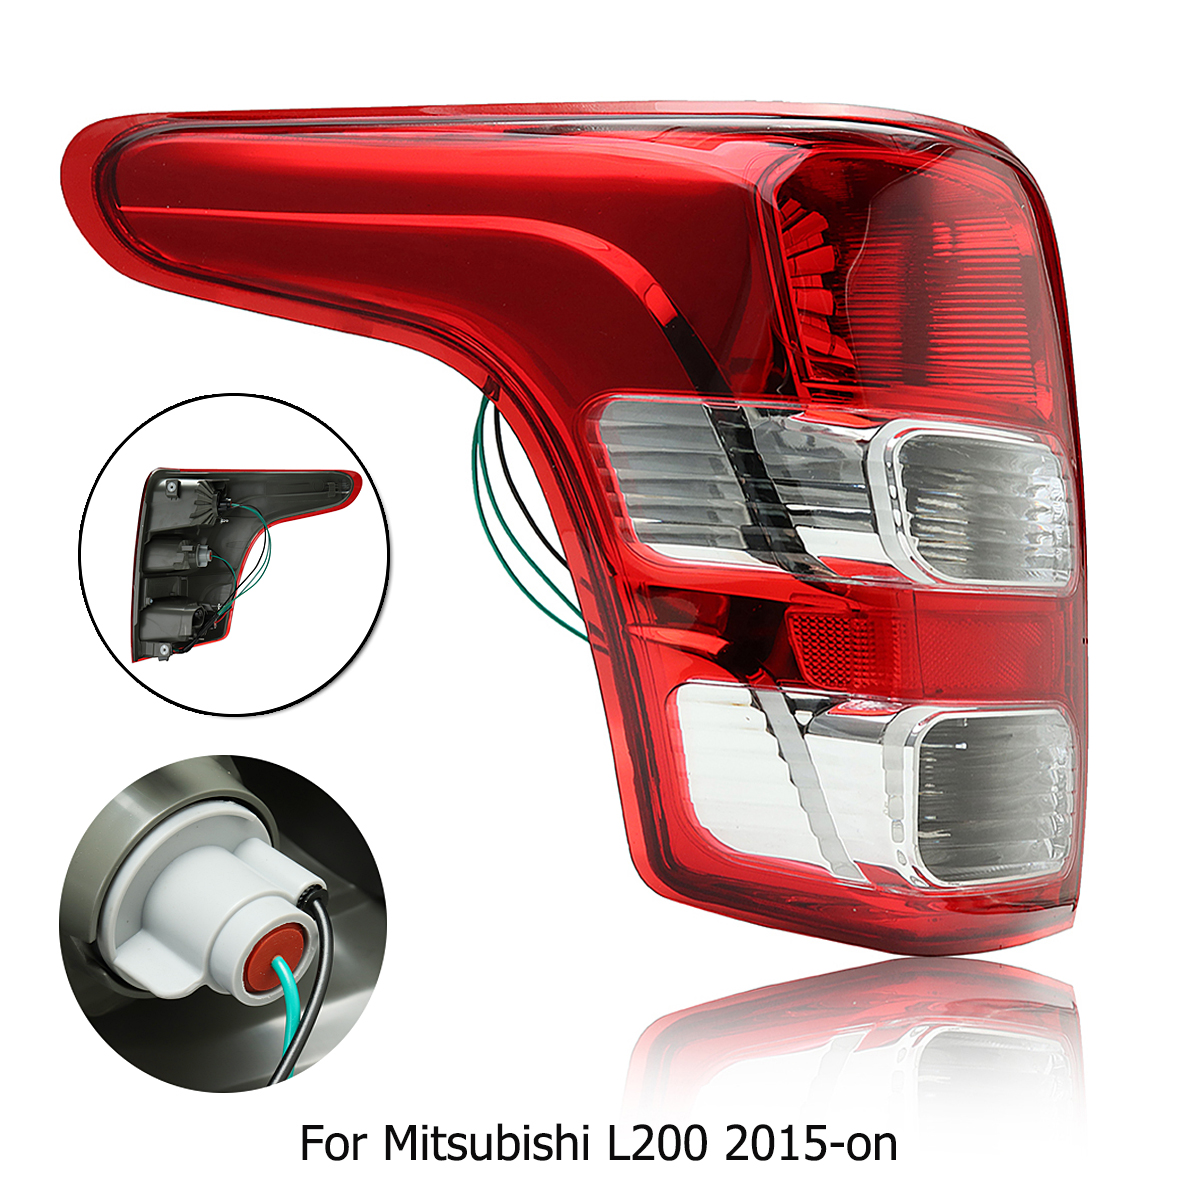 все цены на Red Tail Light Lamp Left Side for Mitsubishi L200 2015-on for Triton for Fiat for Strada онлайн